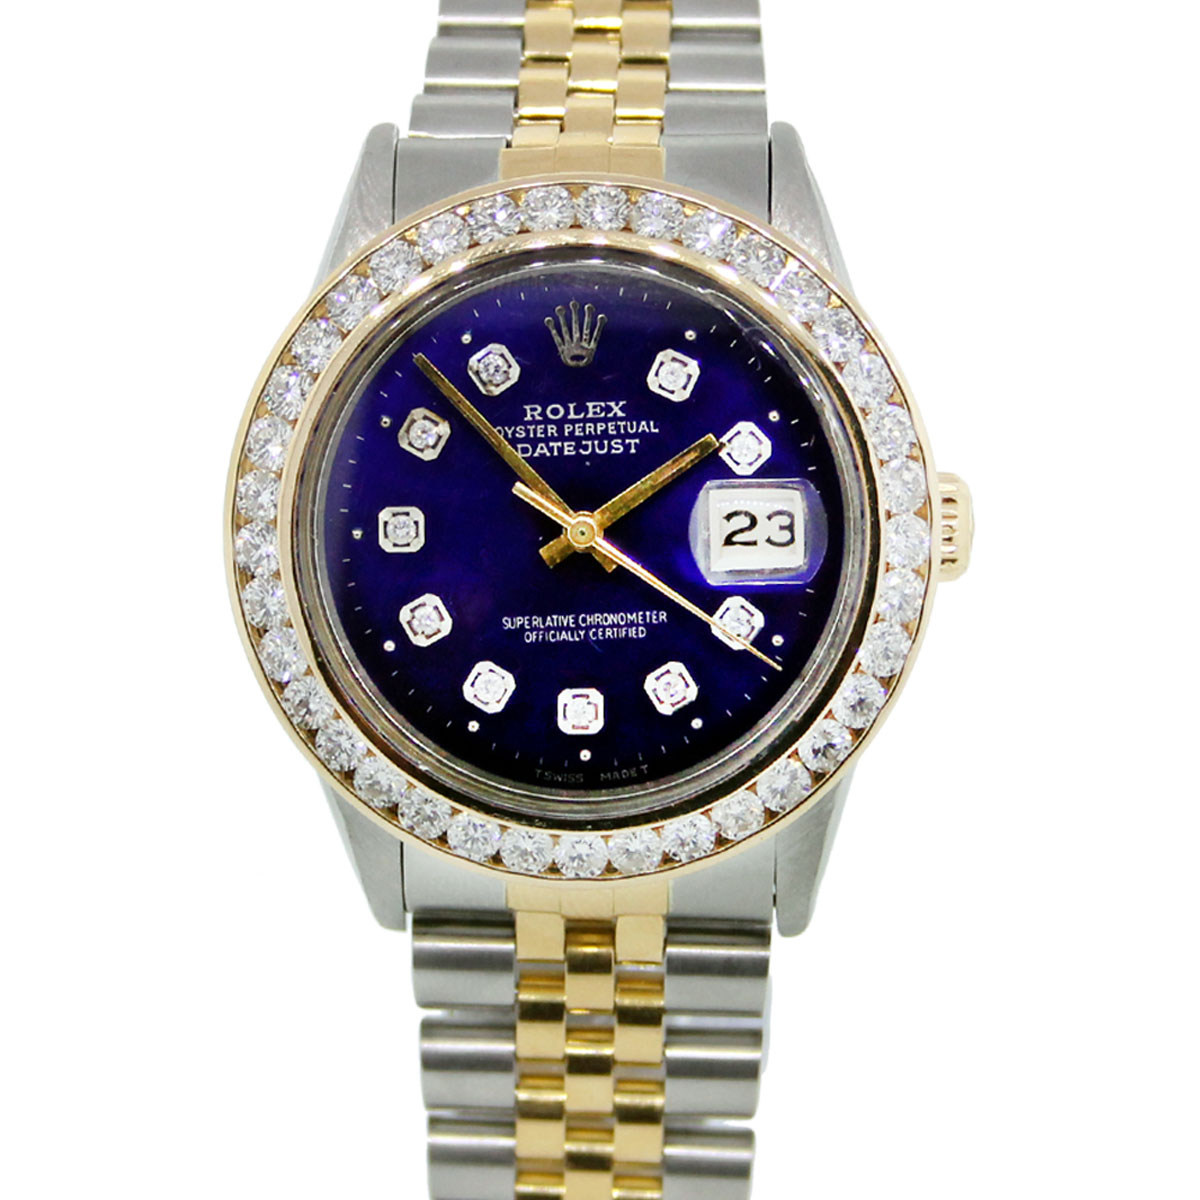 Rolex datejust 16013 blue diamond dial bezel watch for Diamond dial watch